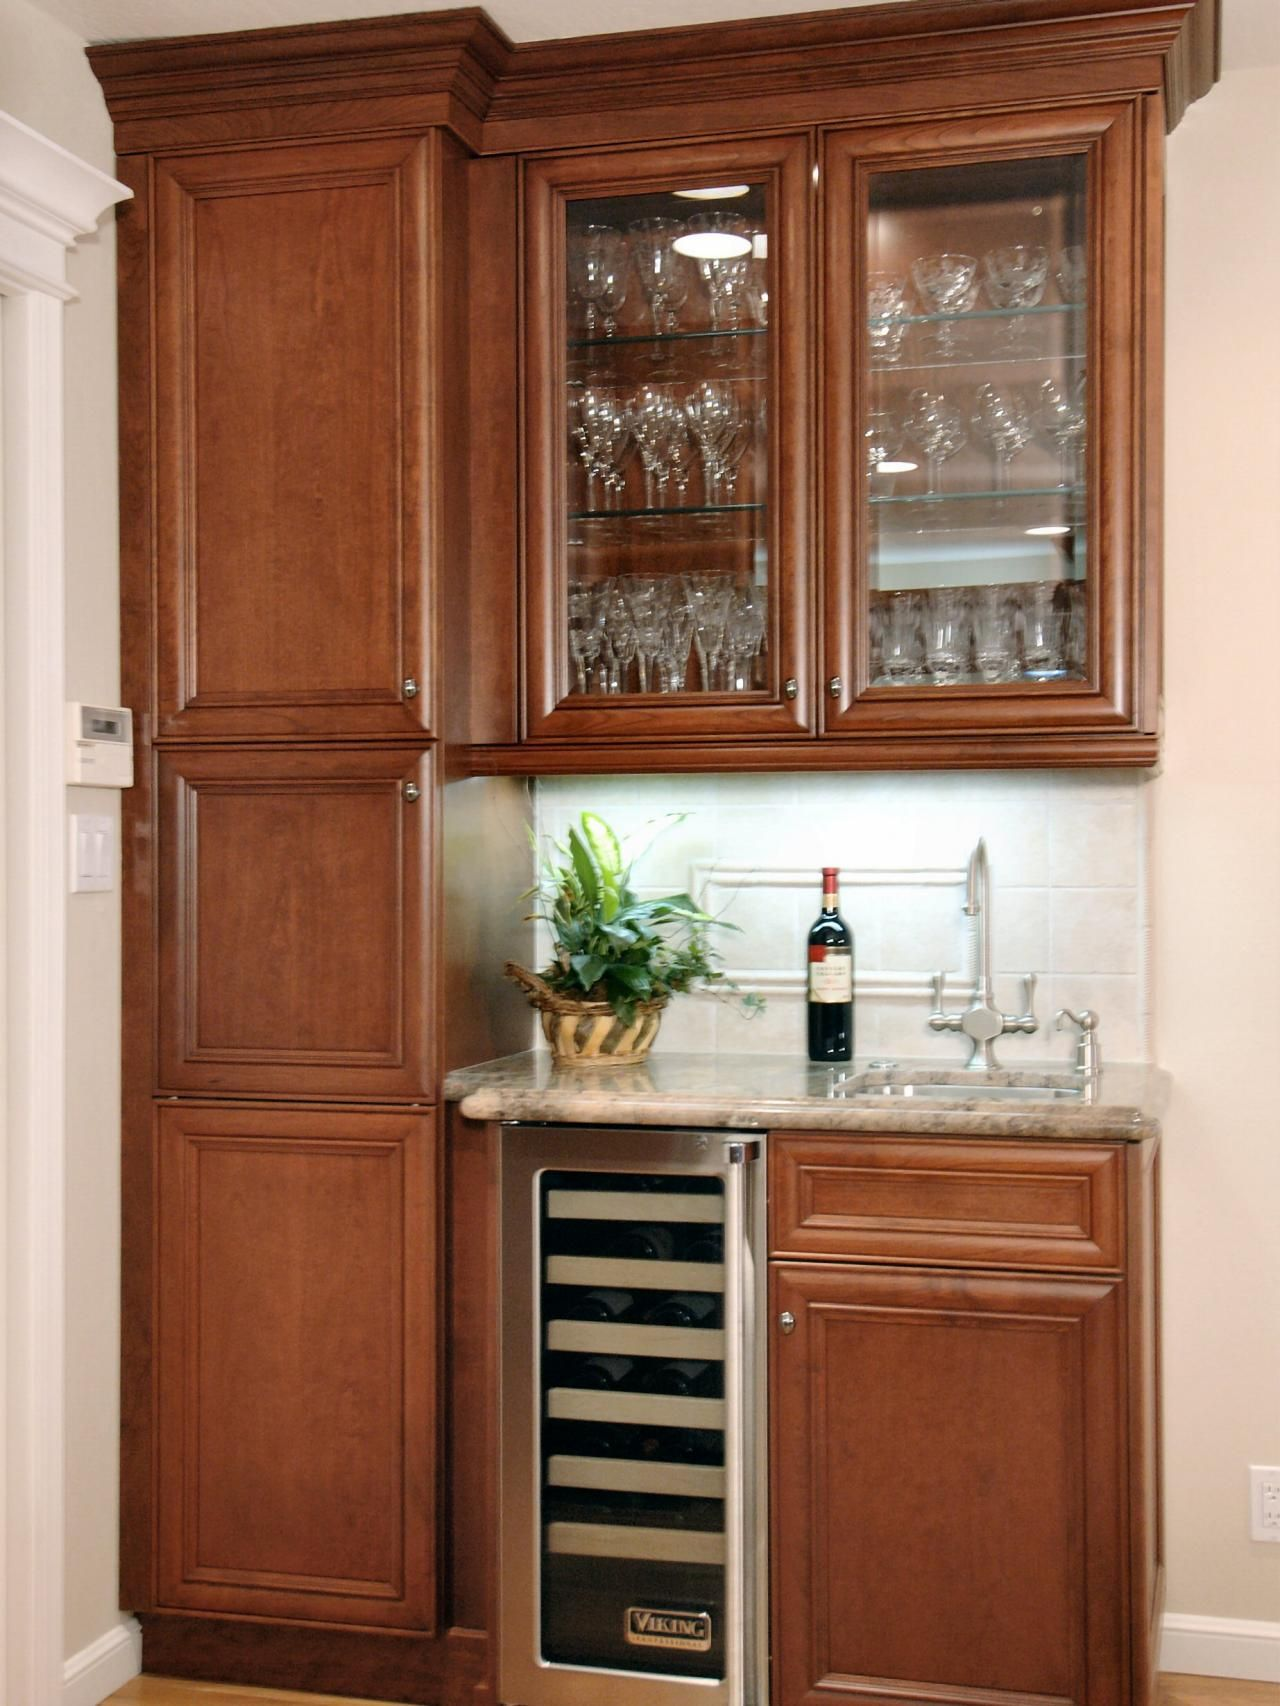 Portable Kitchen Islands Pictures Ideas From Hgtv Hgtv Kitchen Storage Solutions Portable Kitchen Kitchen Design